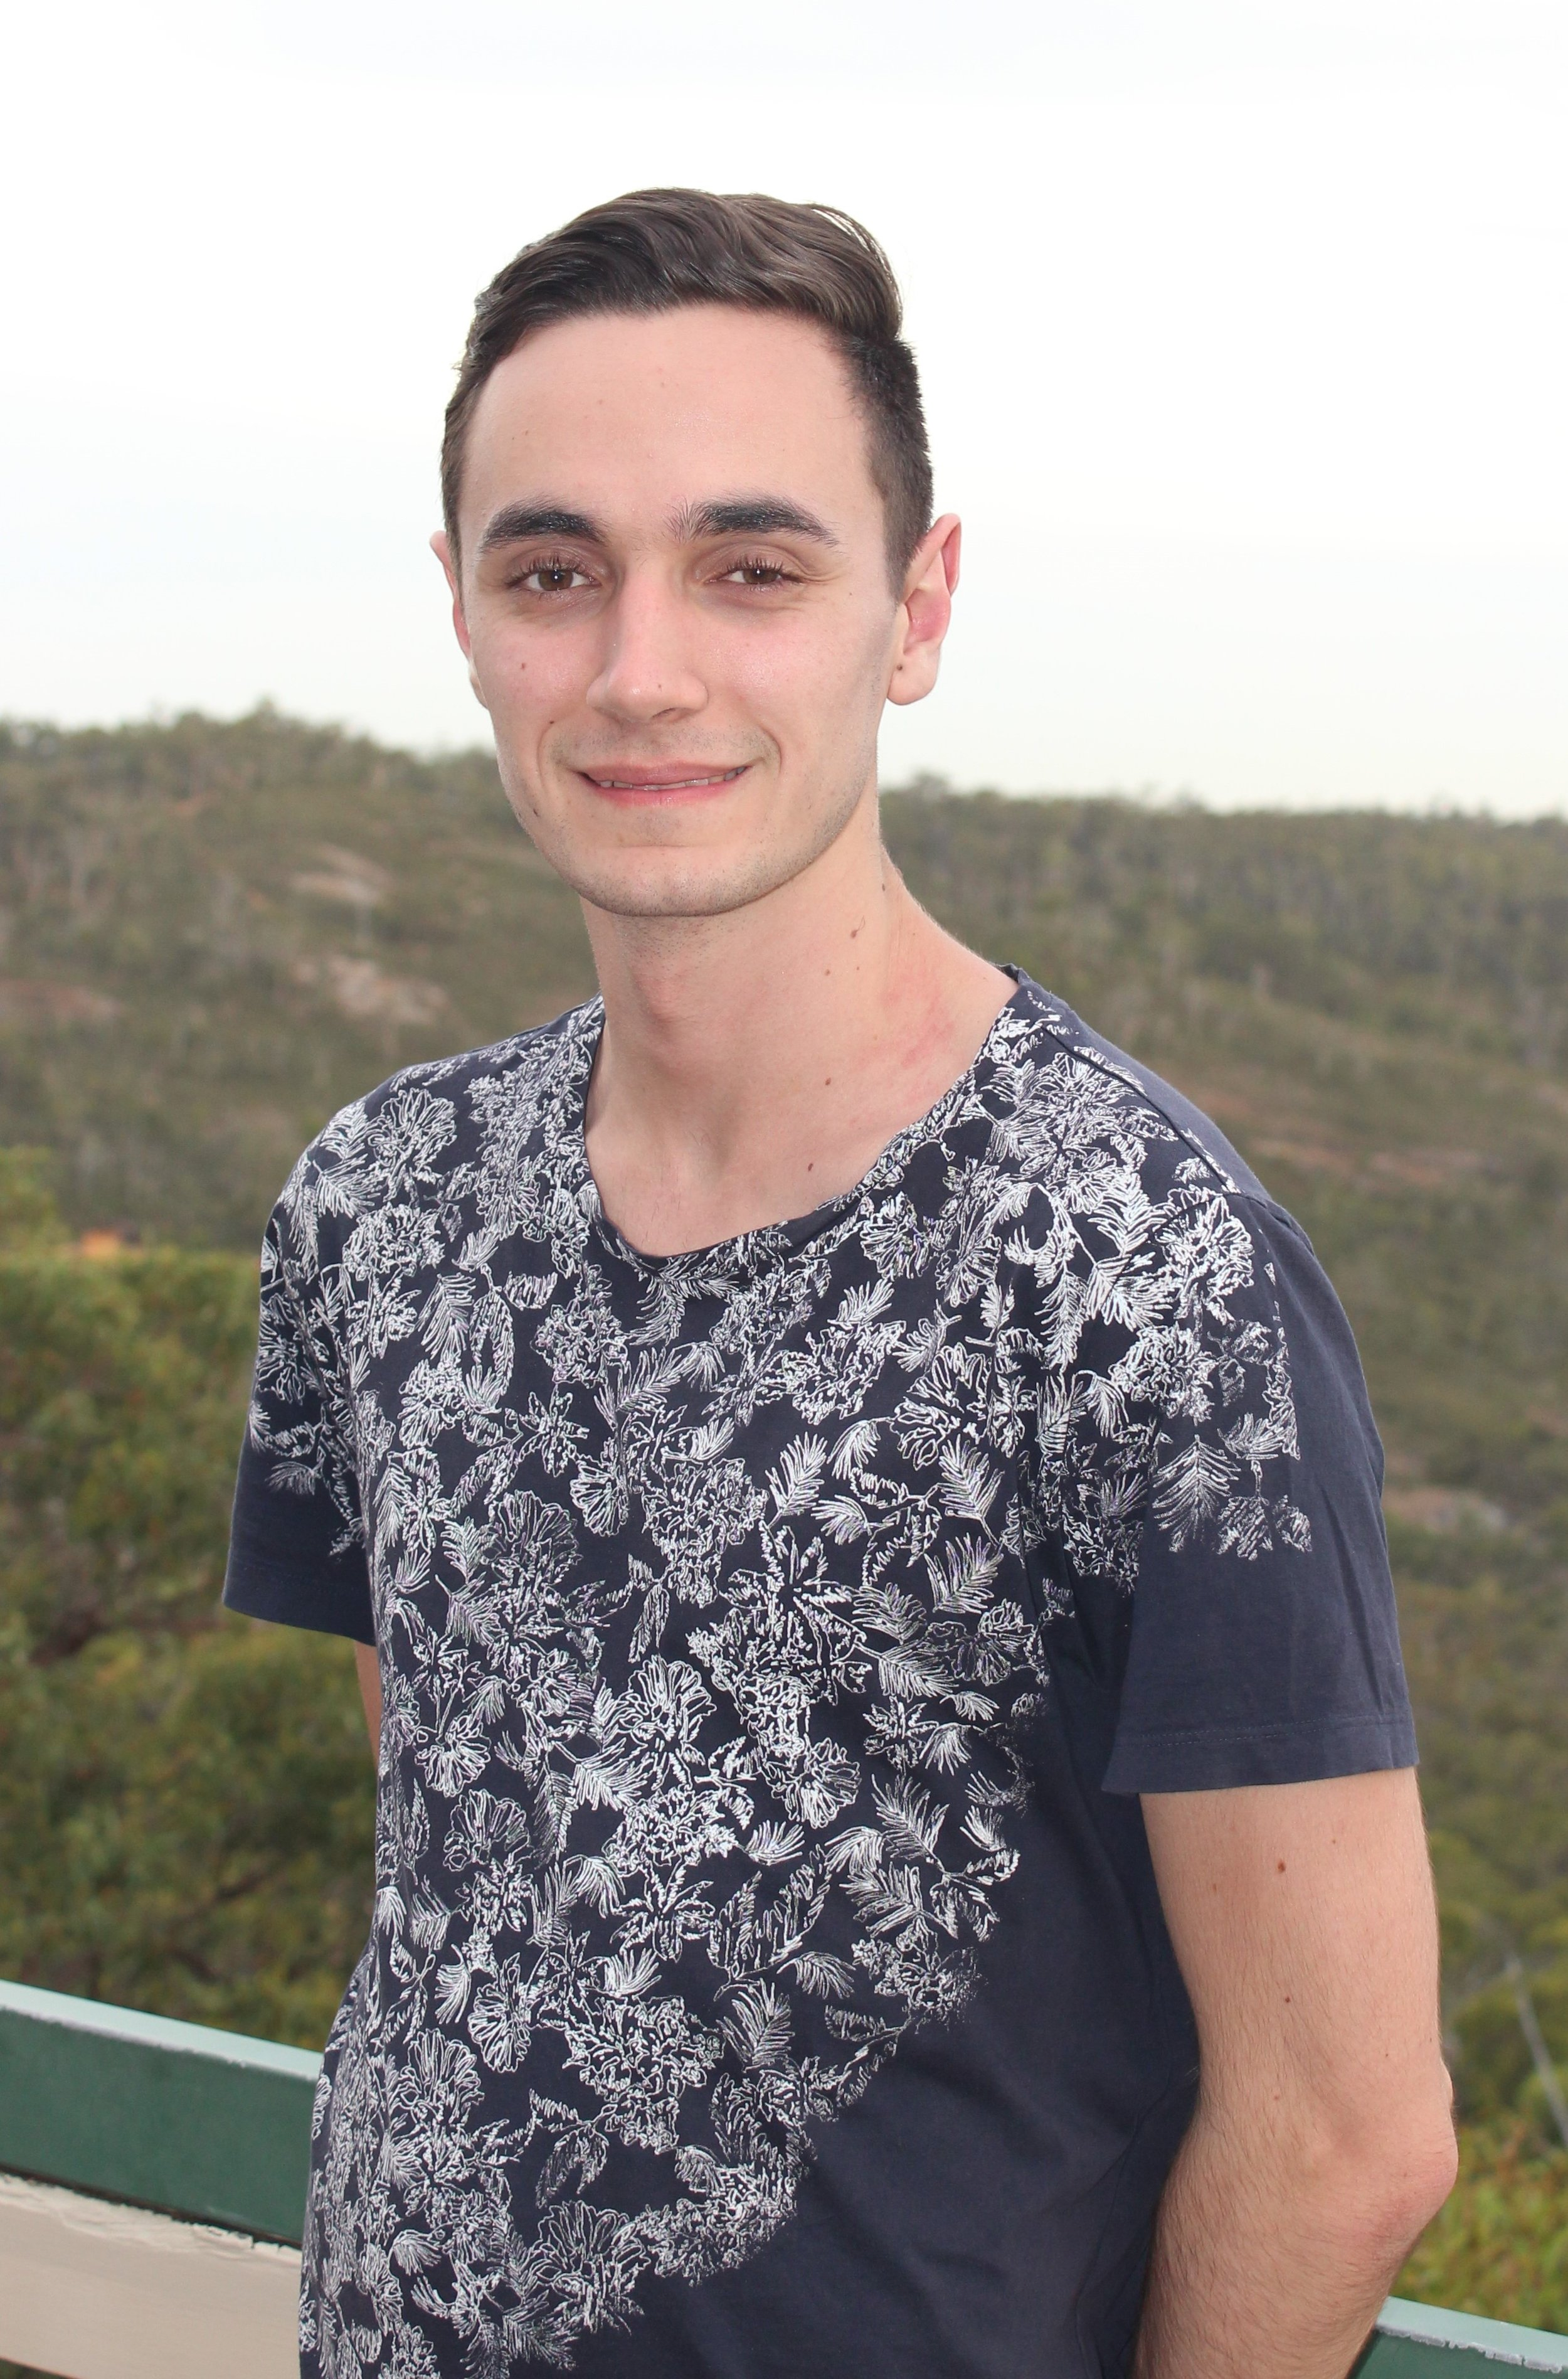 My name is Sam, and though I come from Mandurah I've called College home for four years. I'm completing my Honours in Chemistry looking at fugal wheat pathogens, so you could say I'm a fun-guy. When I'm not in the lab I enjoy reading, knitting and playing board games with friends. My favourite part of College is that it's a friendly environment where you can be yourself.